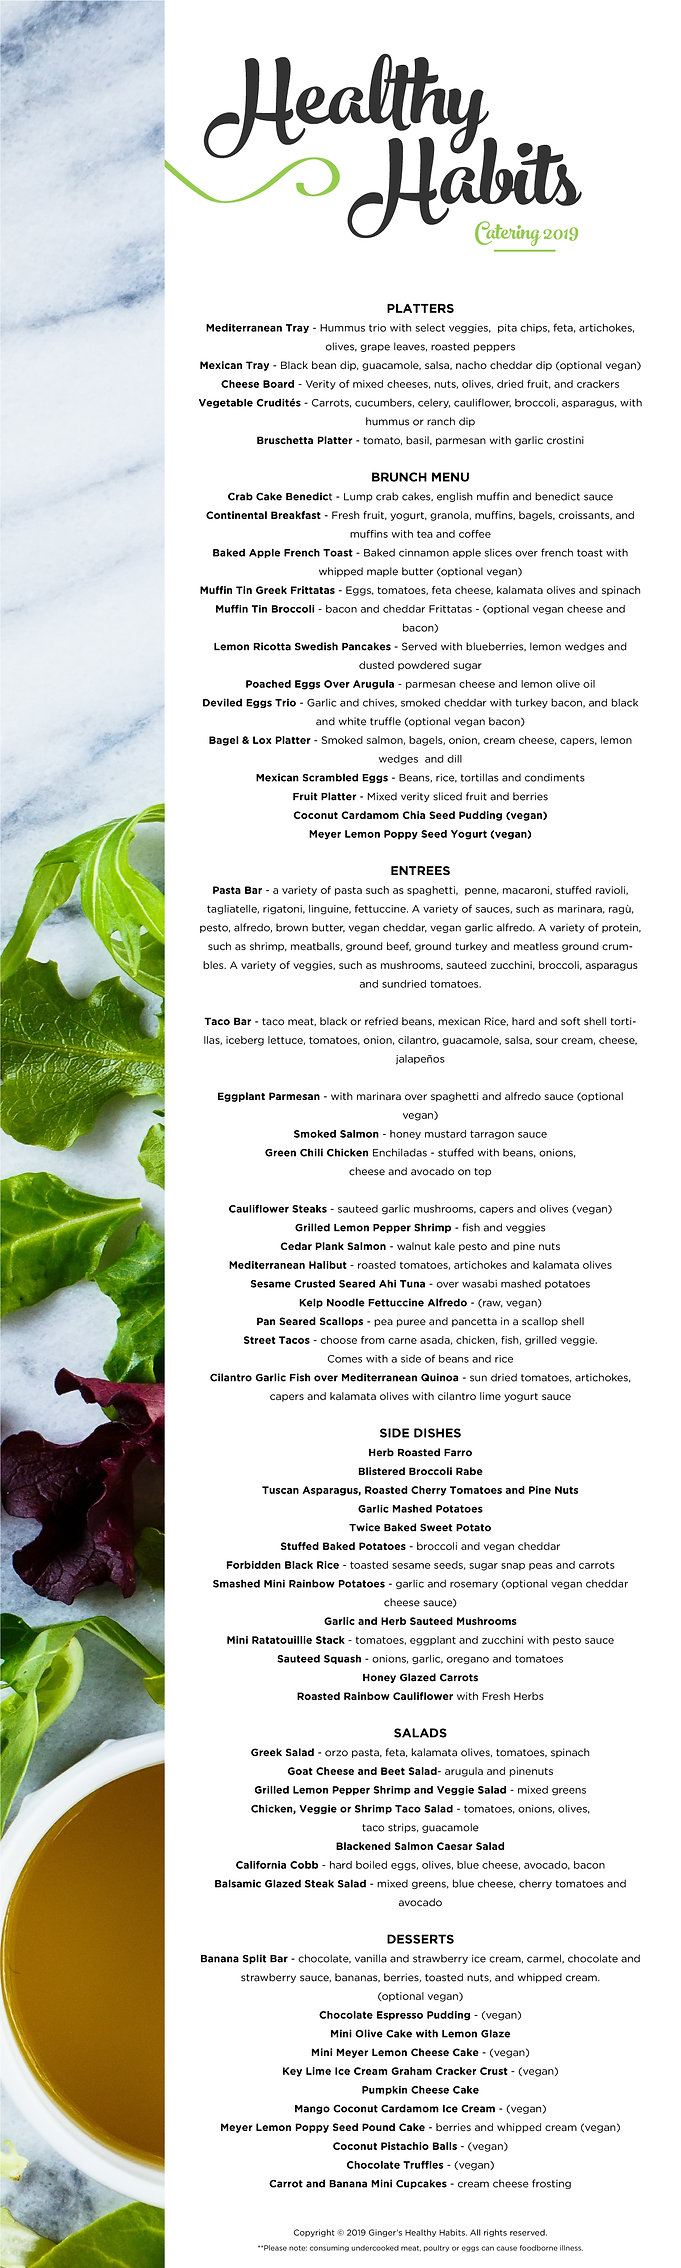 GHH-Summer-Catering-Menu.jpg